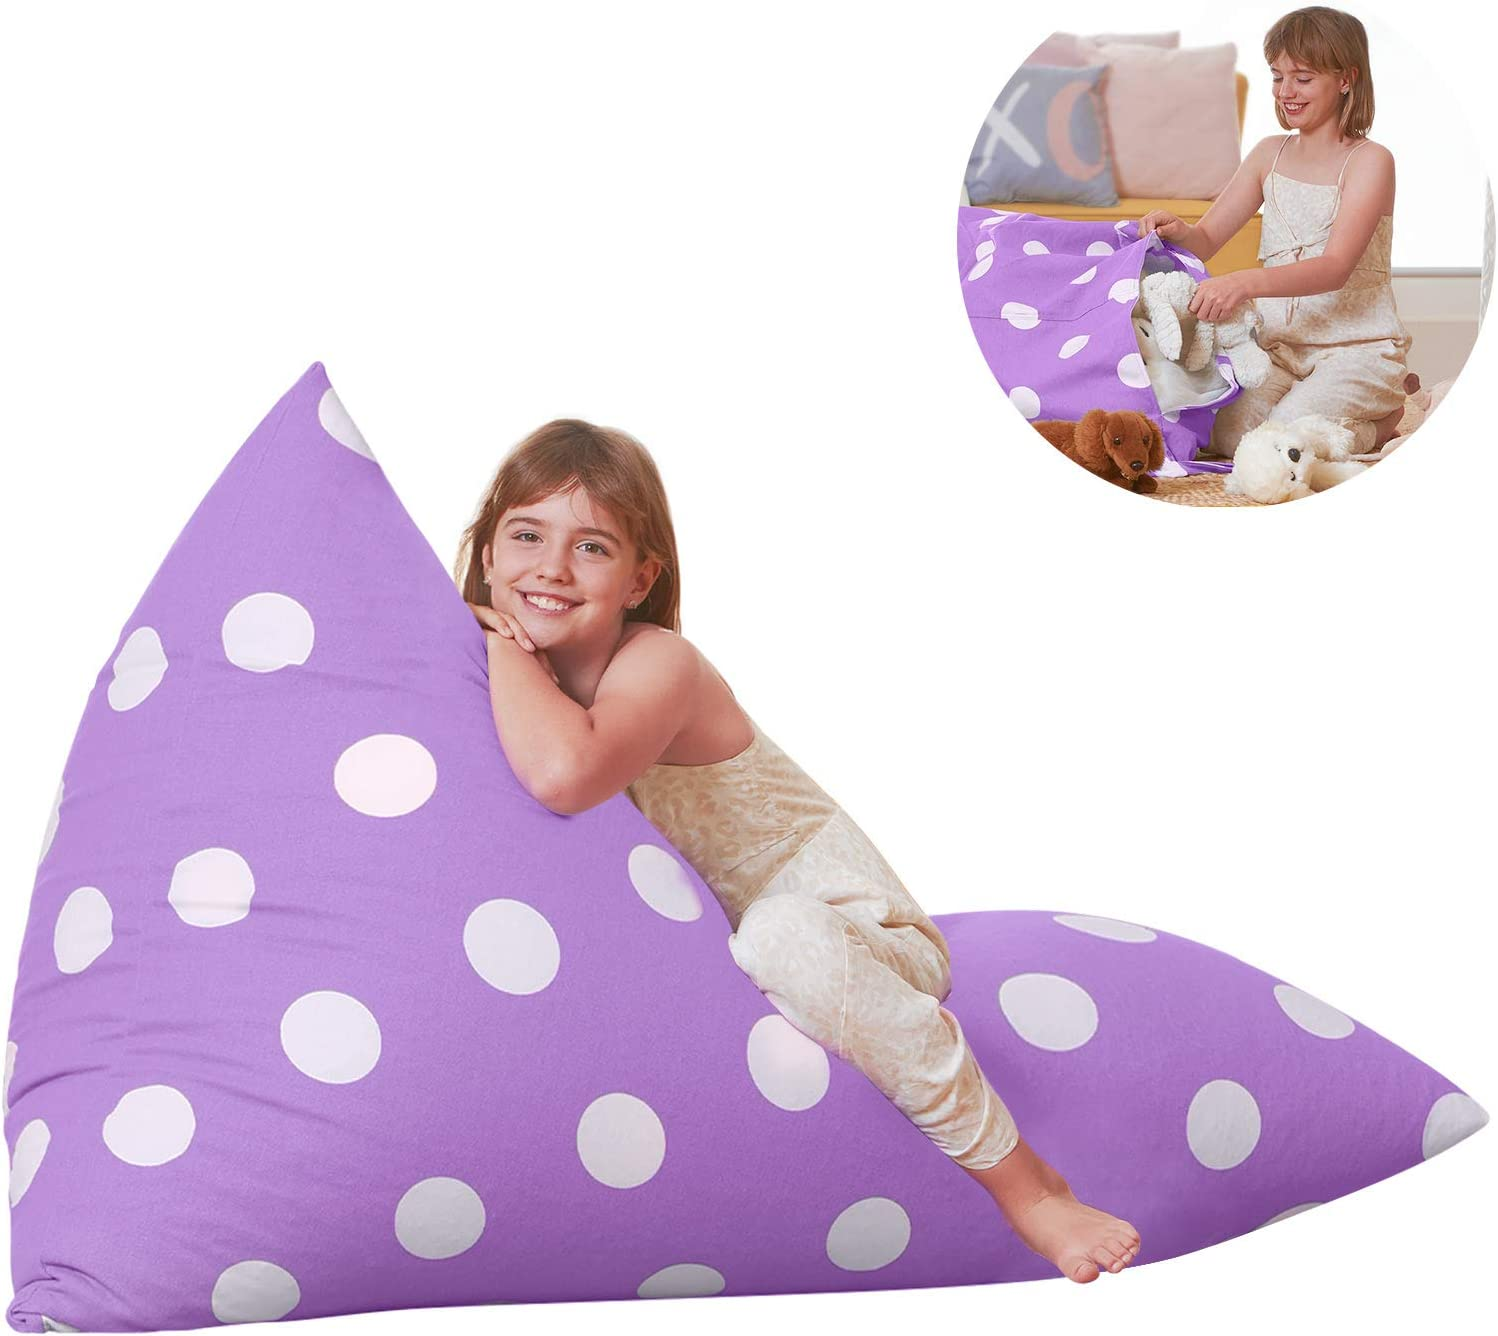 Aubliss Stuffed Animal Storage Bean Bag Chair Cover for Kids, Girls and Adults, Beanbag Cover Only, 23 Inch Long YKK Zipper, Premium Cotton Canvas, Xmas Gift Ideas(Light Purple dot)